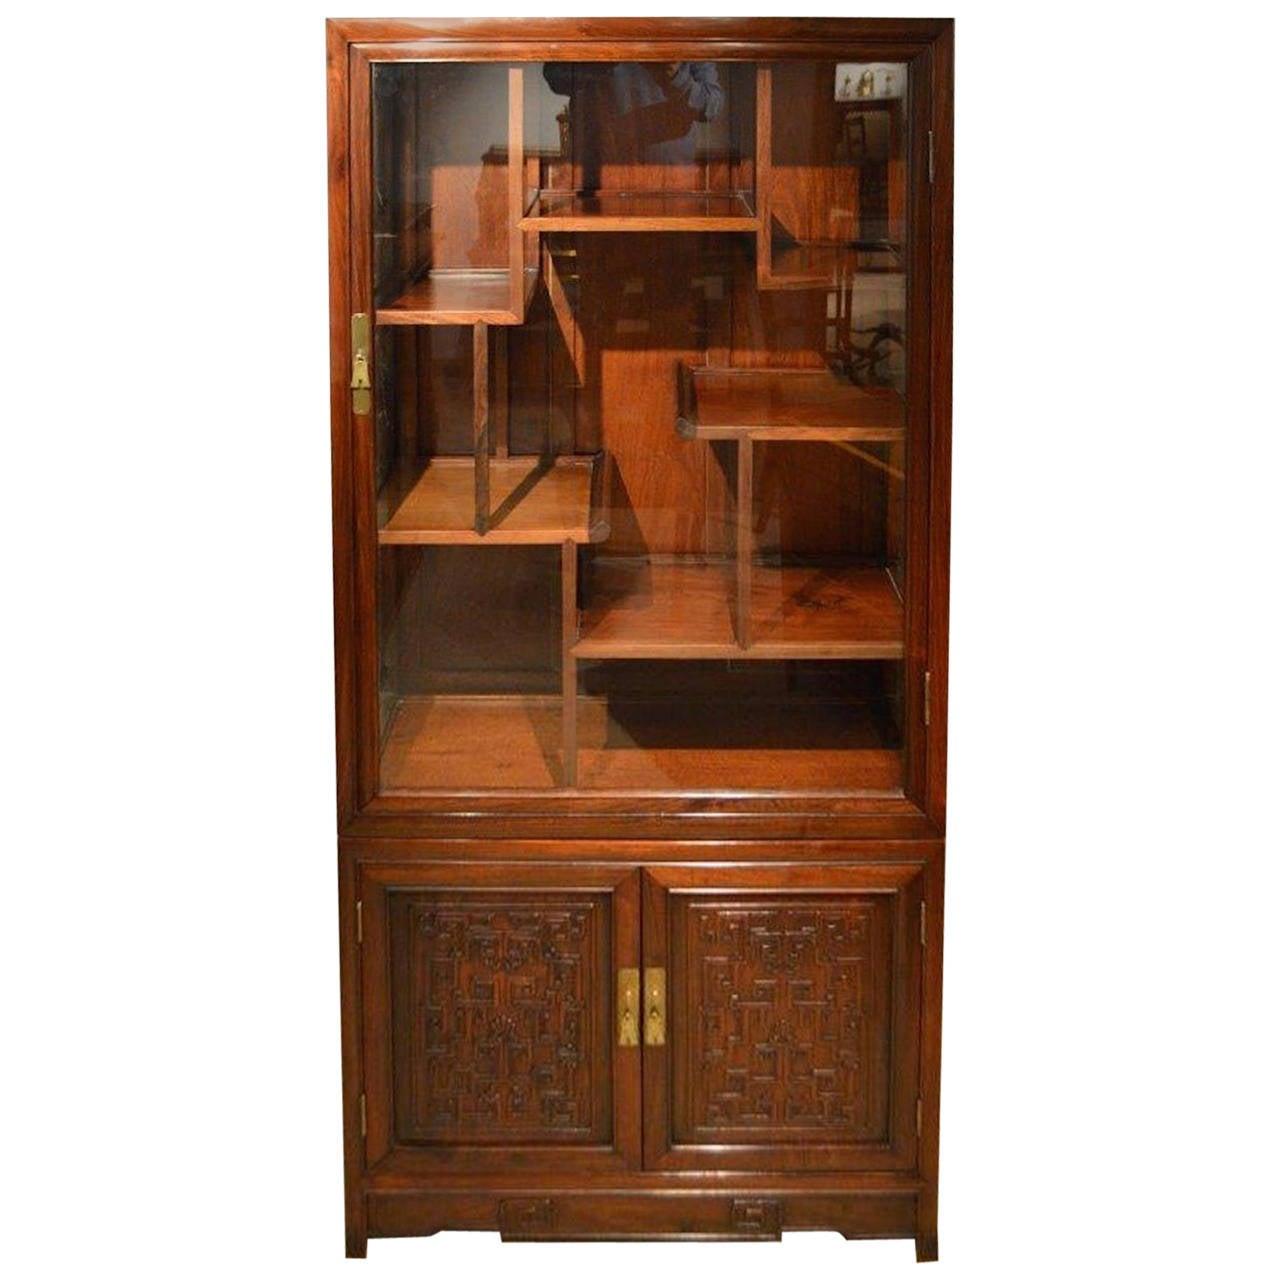 Hardwood chinese antique display cabinet at 1stdibs for Antique display cabinet